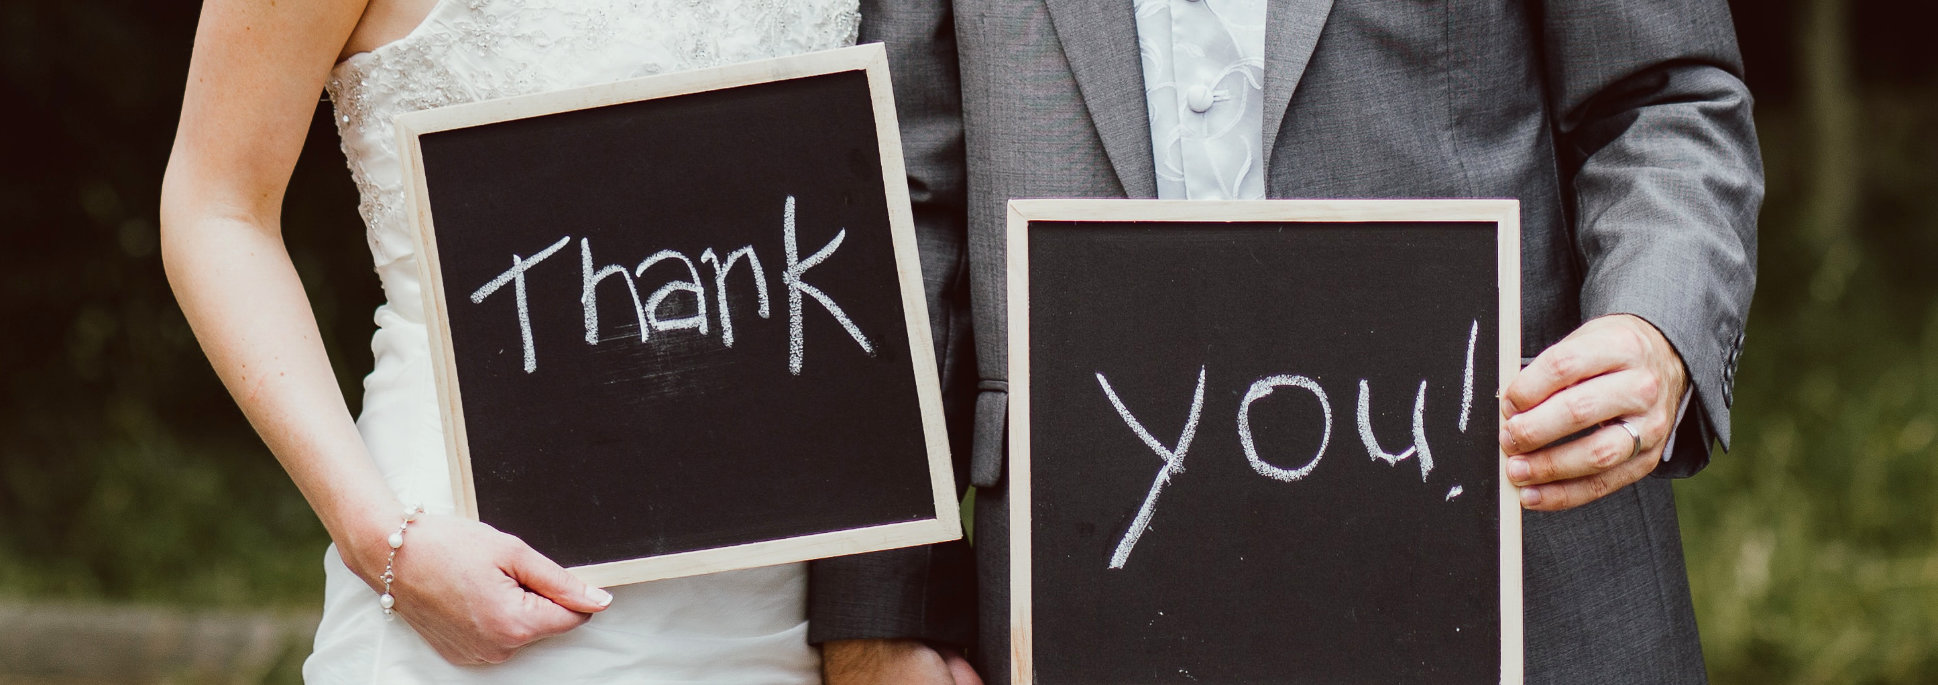 Wedding couple hold up Thank You signs written on chalk boards.